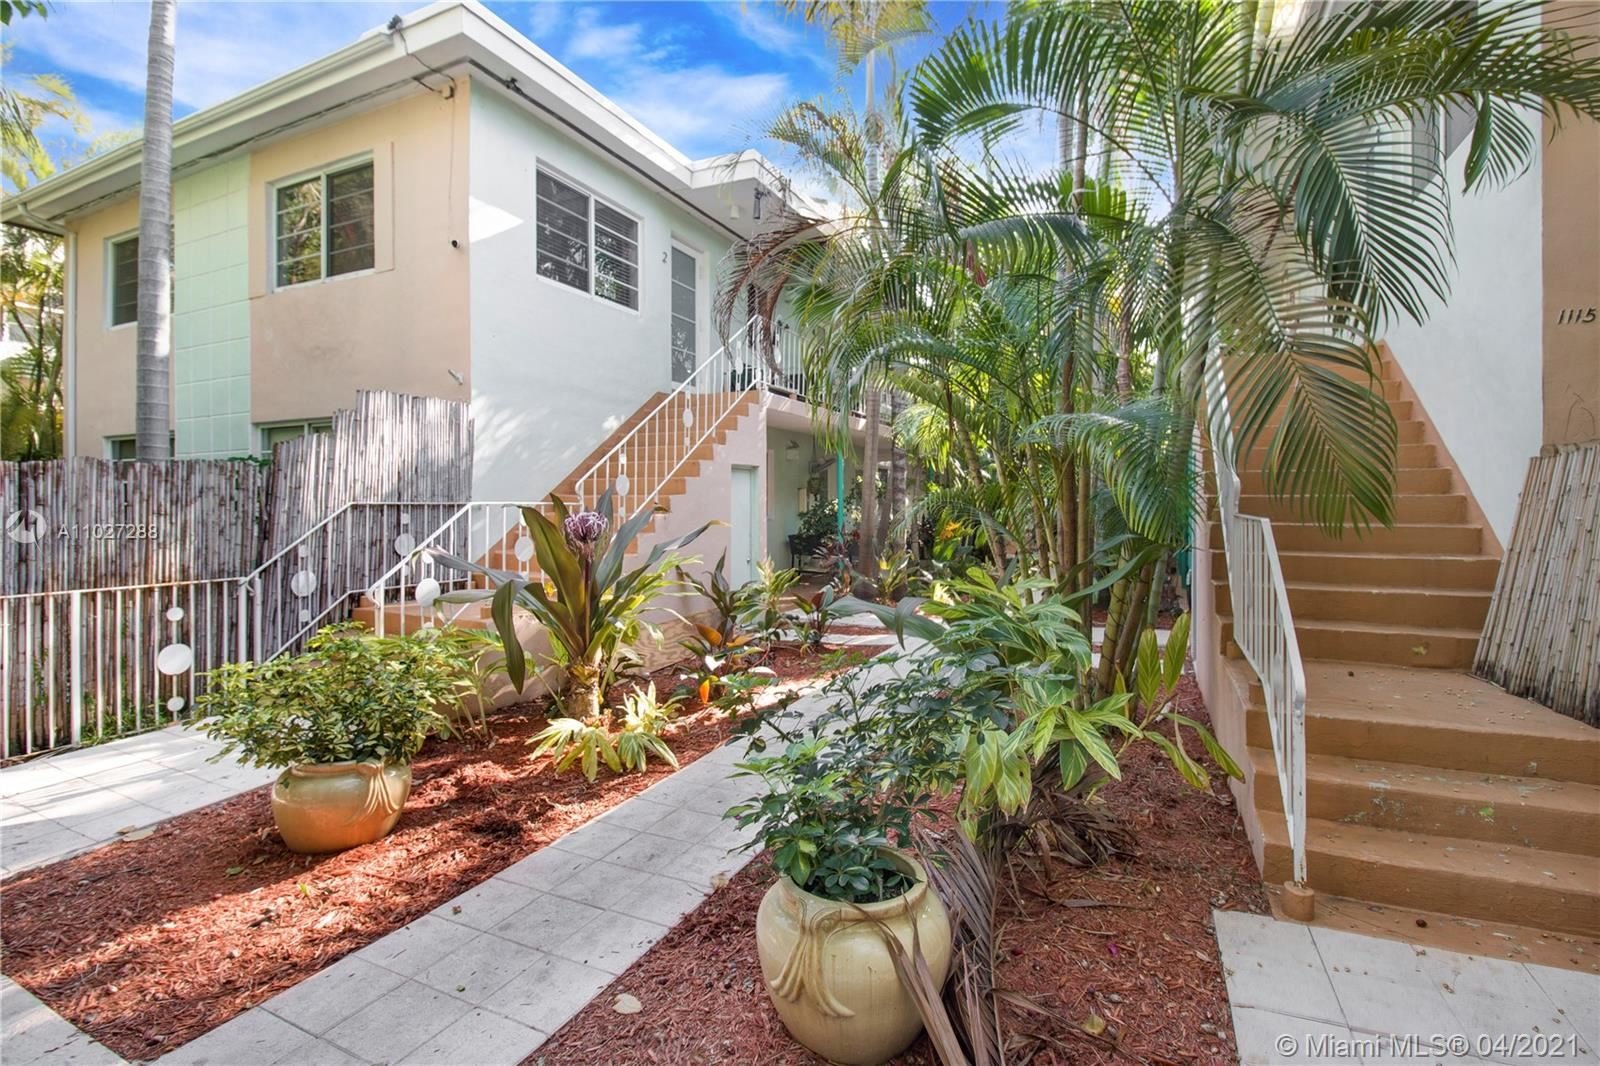 1127 Meridian Ave #5-1127, Miami Beach, FL 33139 - #: A11027288